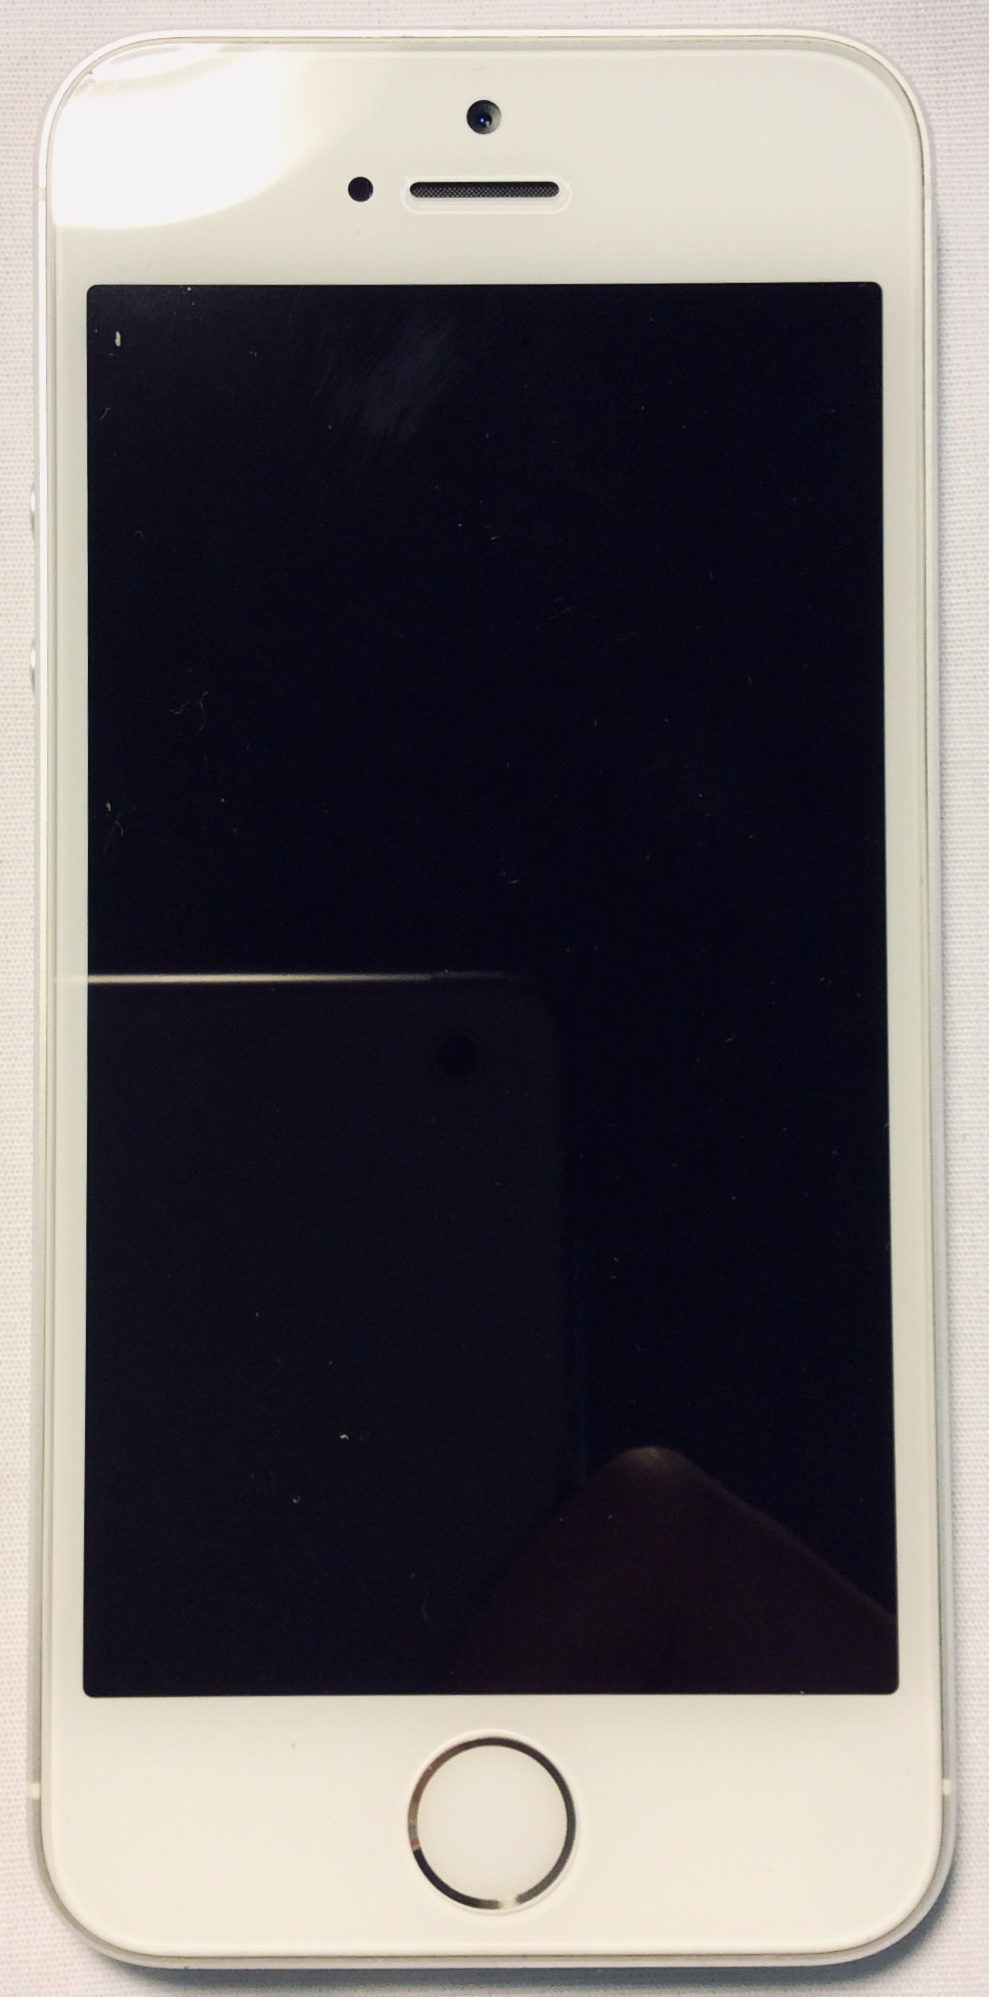 Apple iPhone 6+, light silver